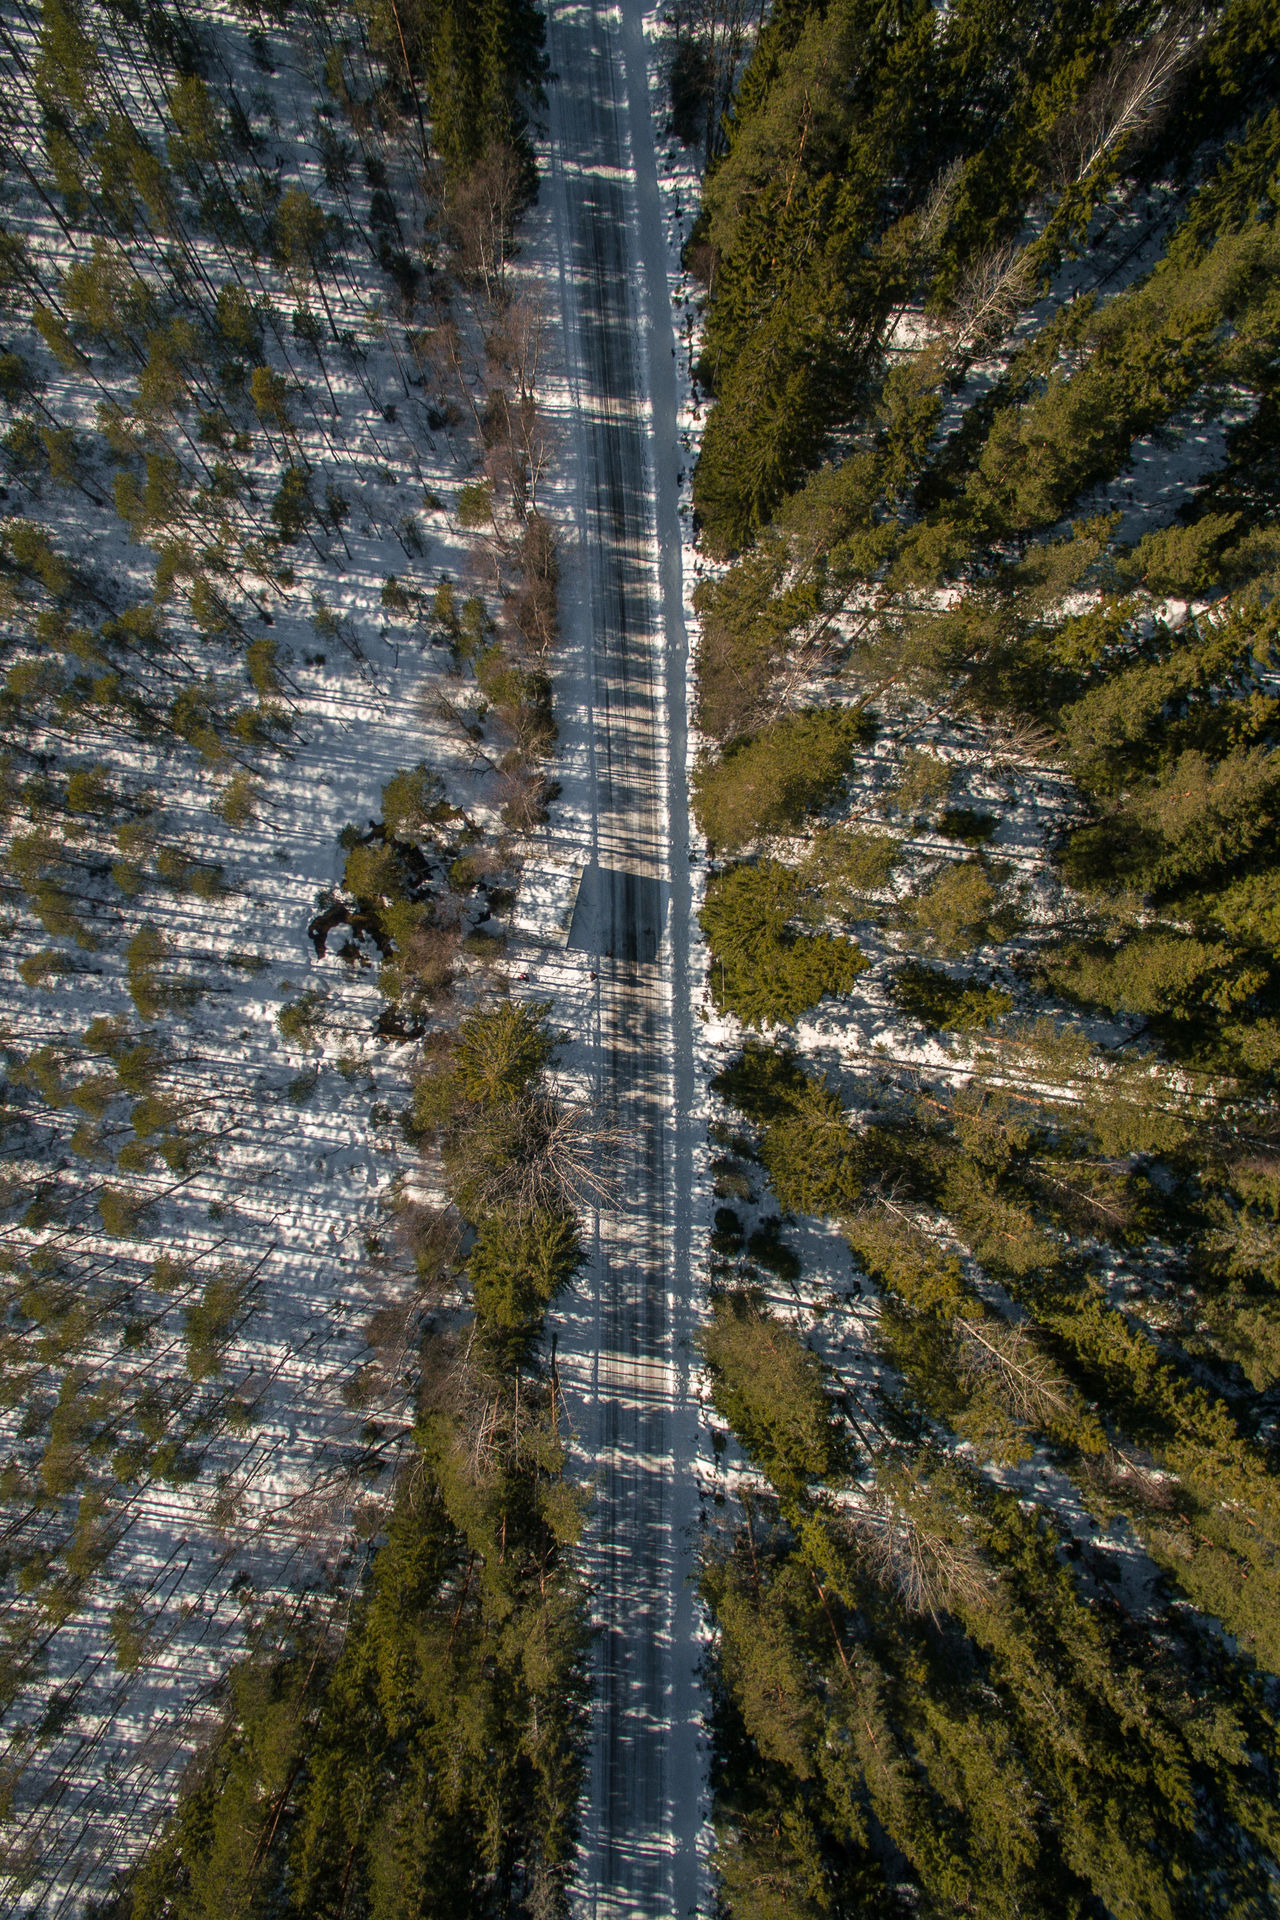 Aerial View Beauty In Nature Day Drone  Dronephotography Drones Finland FlyHigh Flying High Forest Nature No People Nuuksio Outdoors Pinetrees Road Scenics Top Perspective Top View Topshot Tranquility Tree Tree Water Flying High Flying High